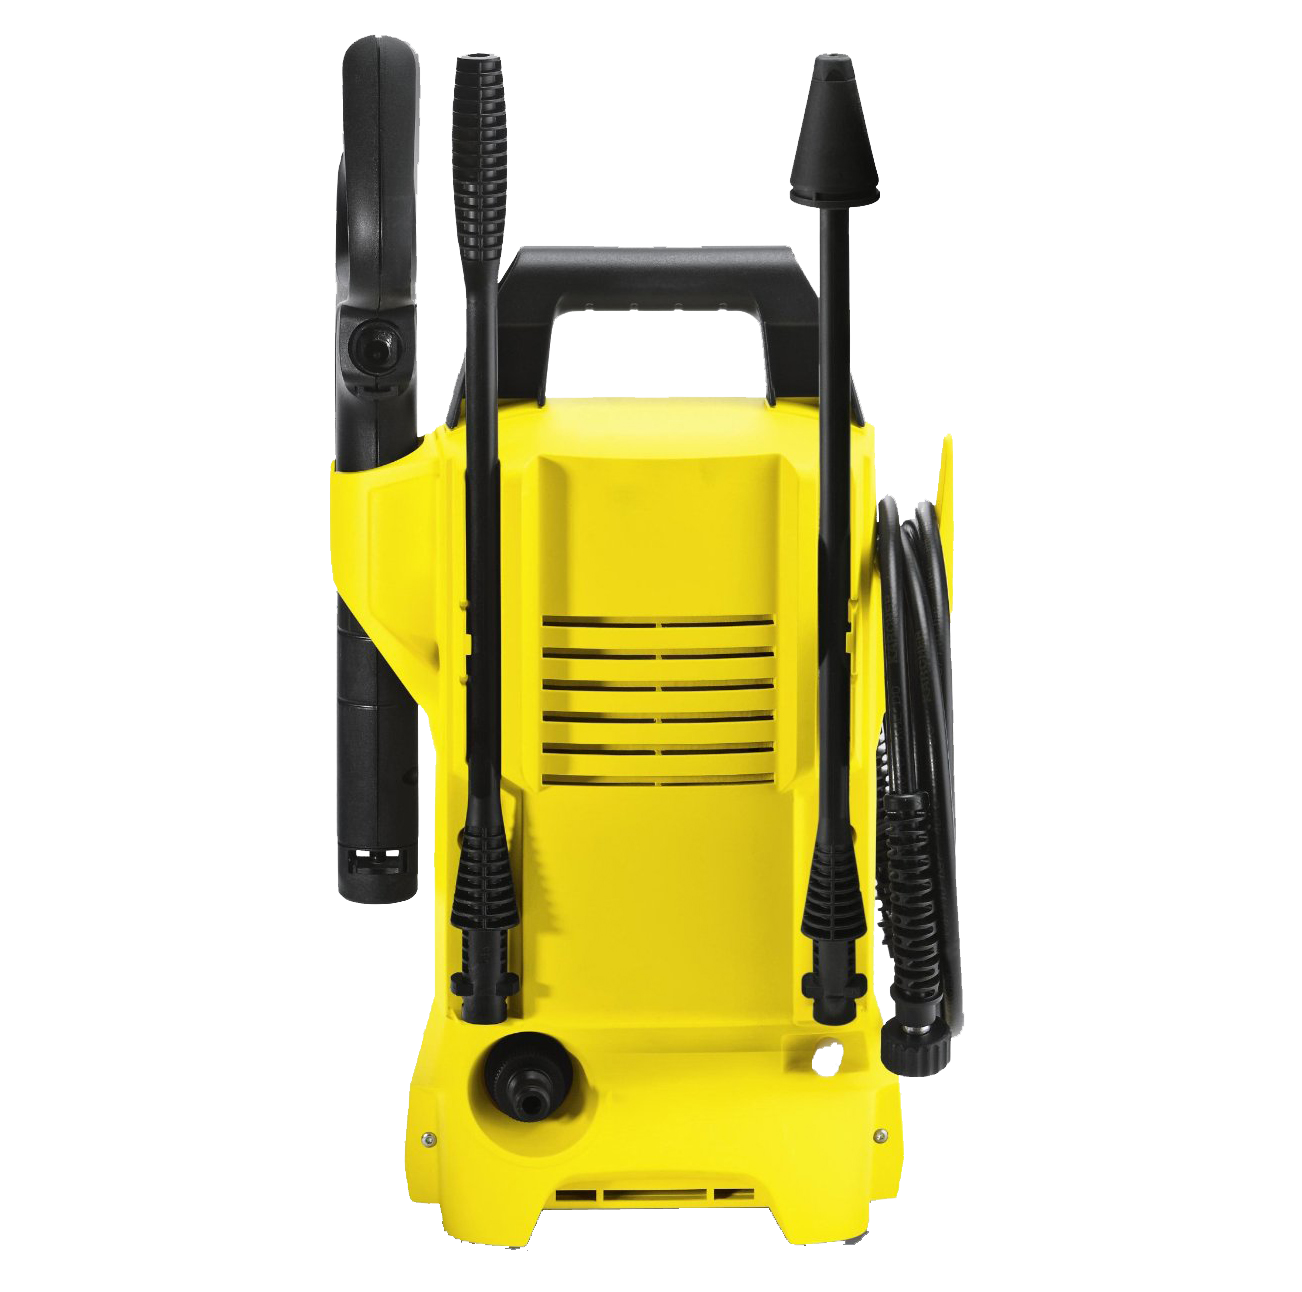 spring cleaning with the karcher k2 compact pressure washer ray grahams diy store. Black Bedroom Furniture Sets. Home Design Ideas